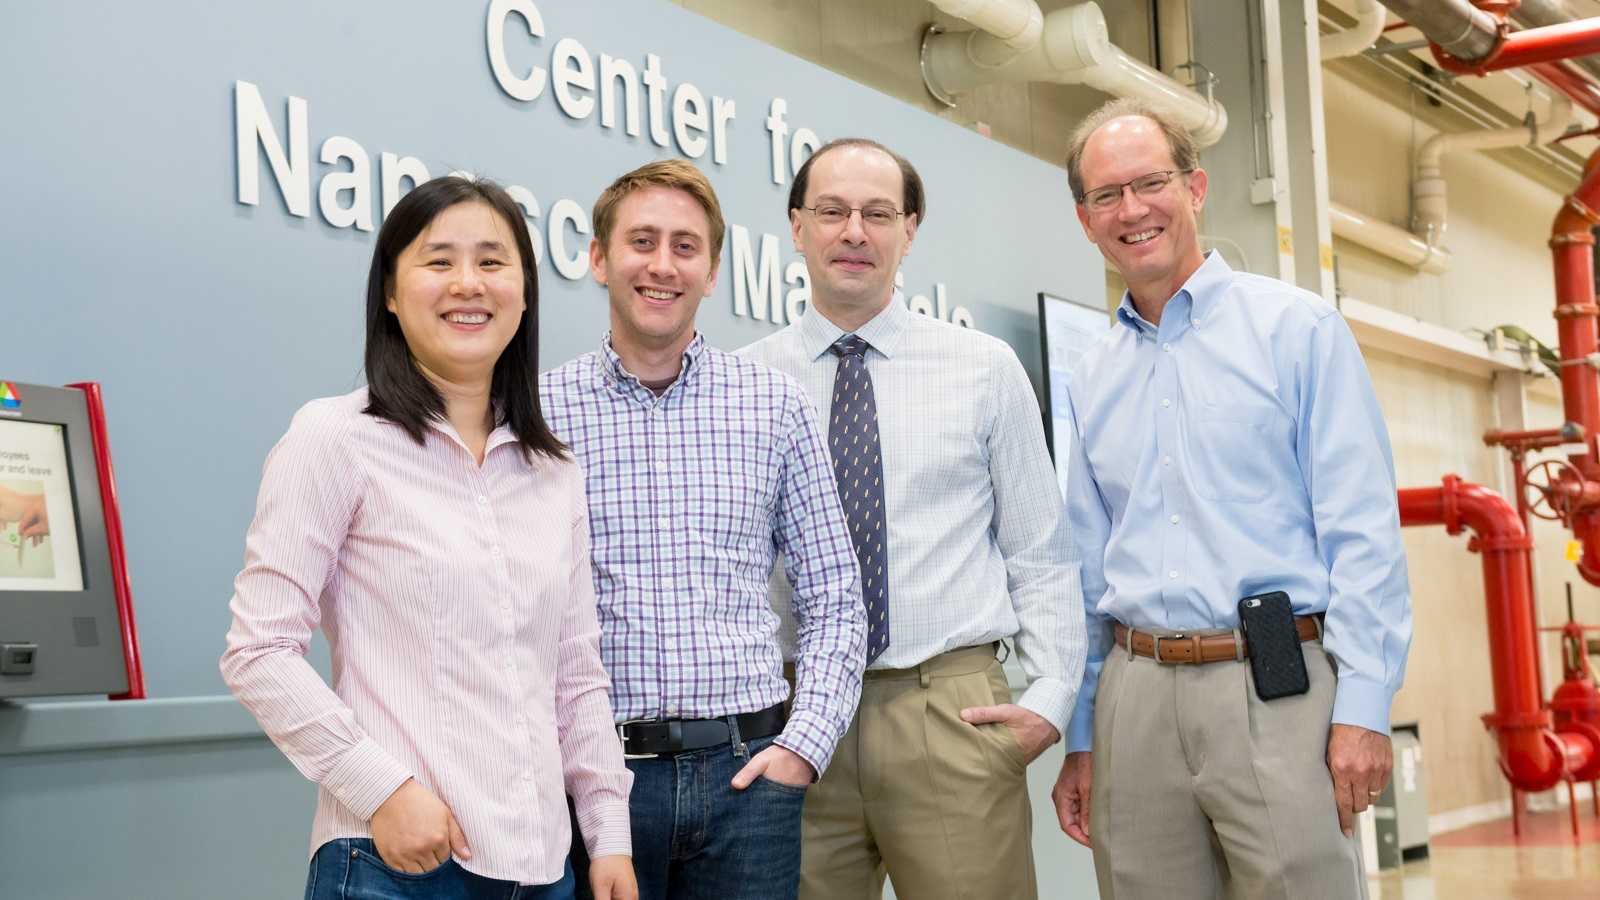 The Argonne team is pictured here. Left to right: Xuedan Ma, Benjamin Diroll, Richard Schaller and Gary Wiederrecht. (Image by Argonne National Laboratory.)